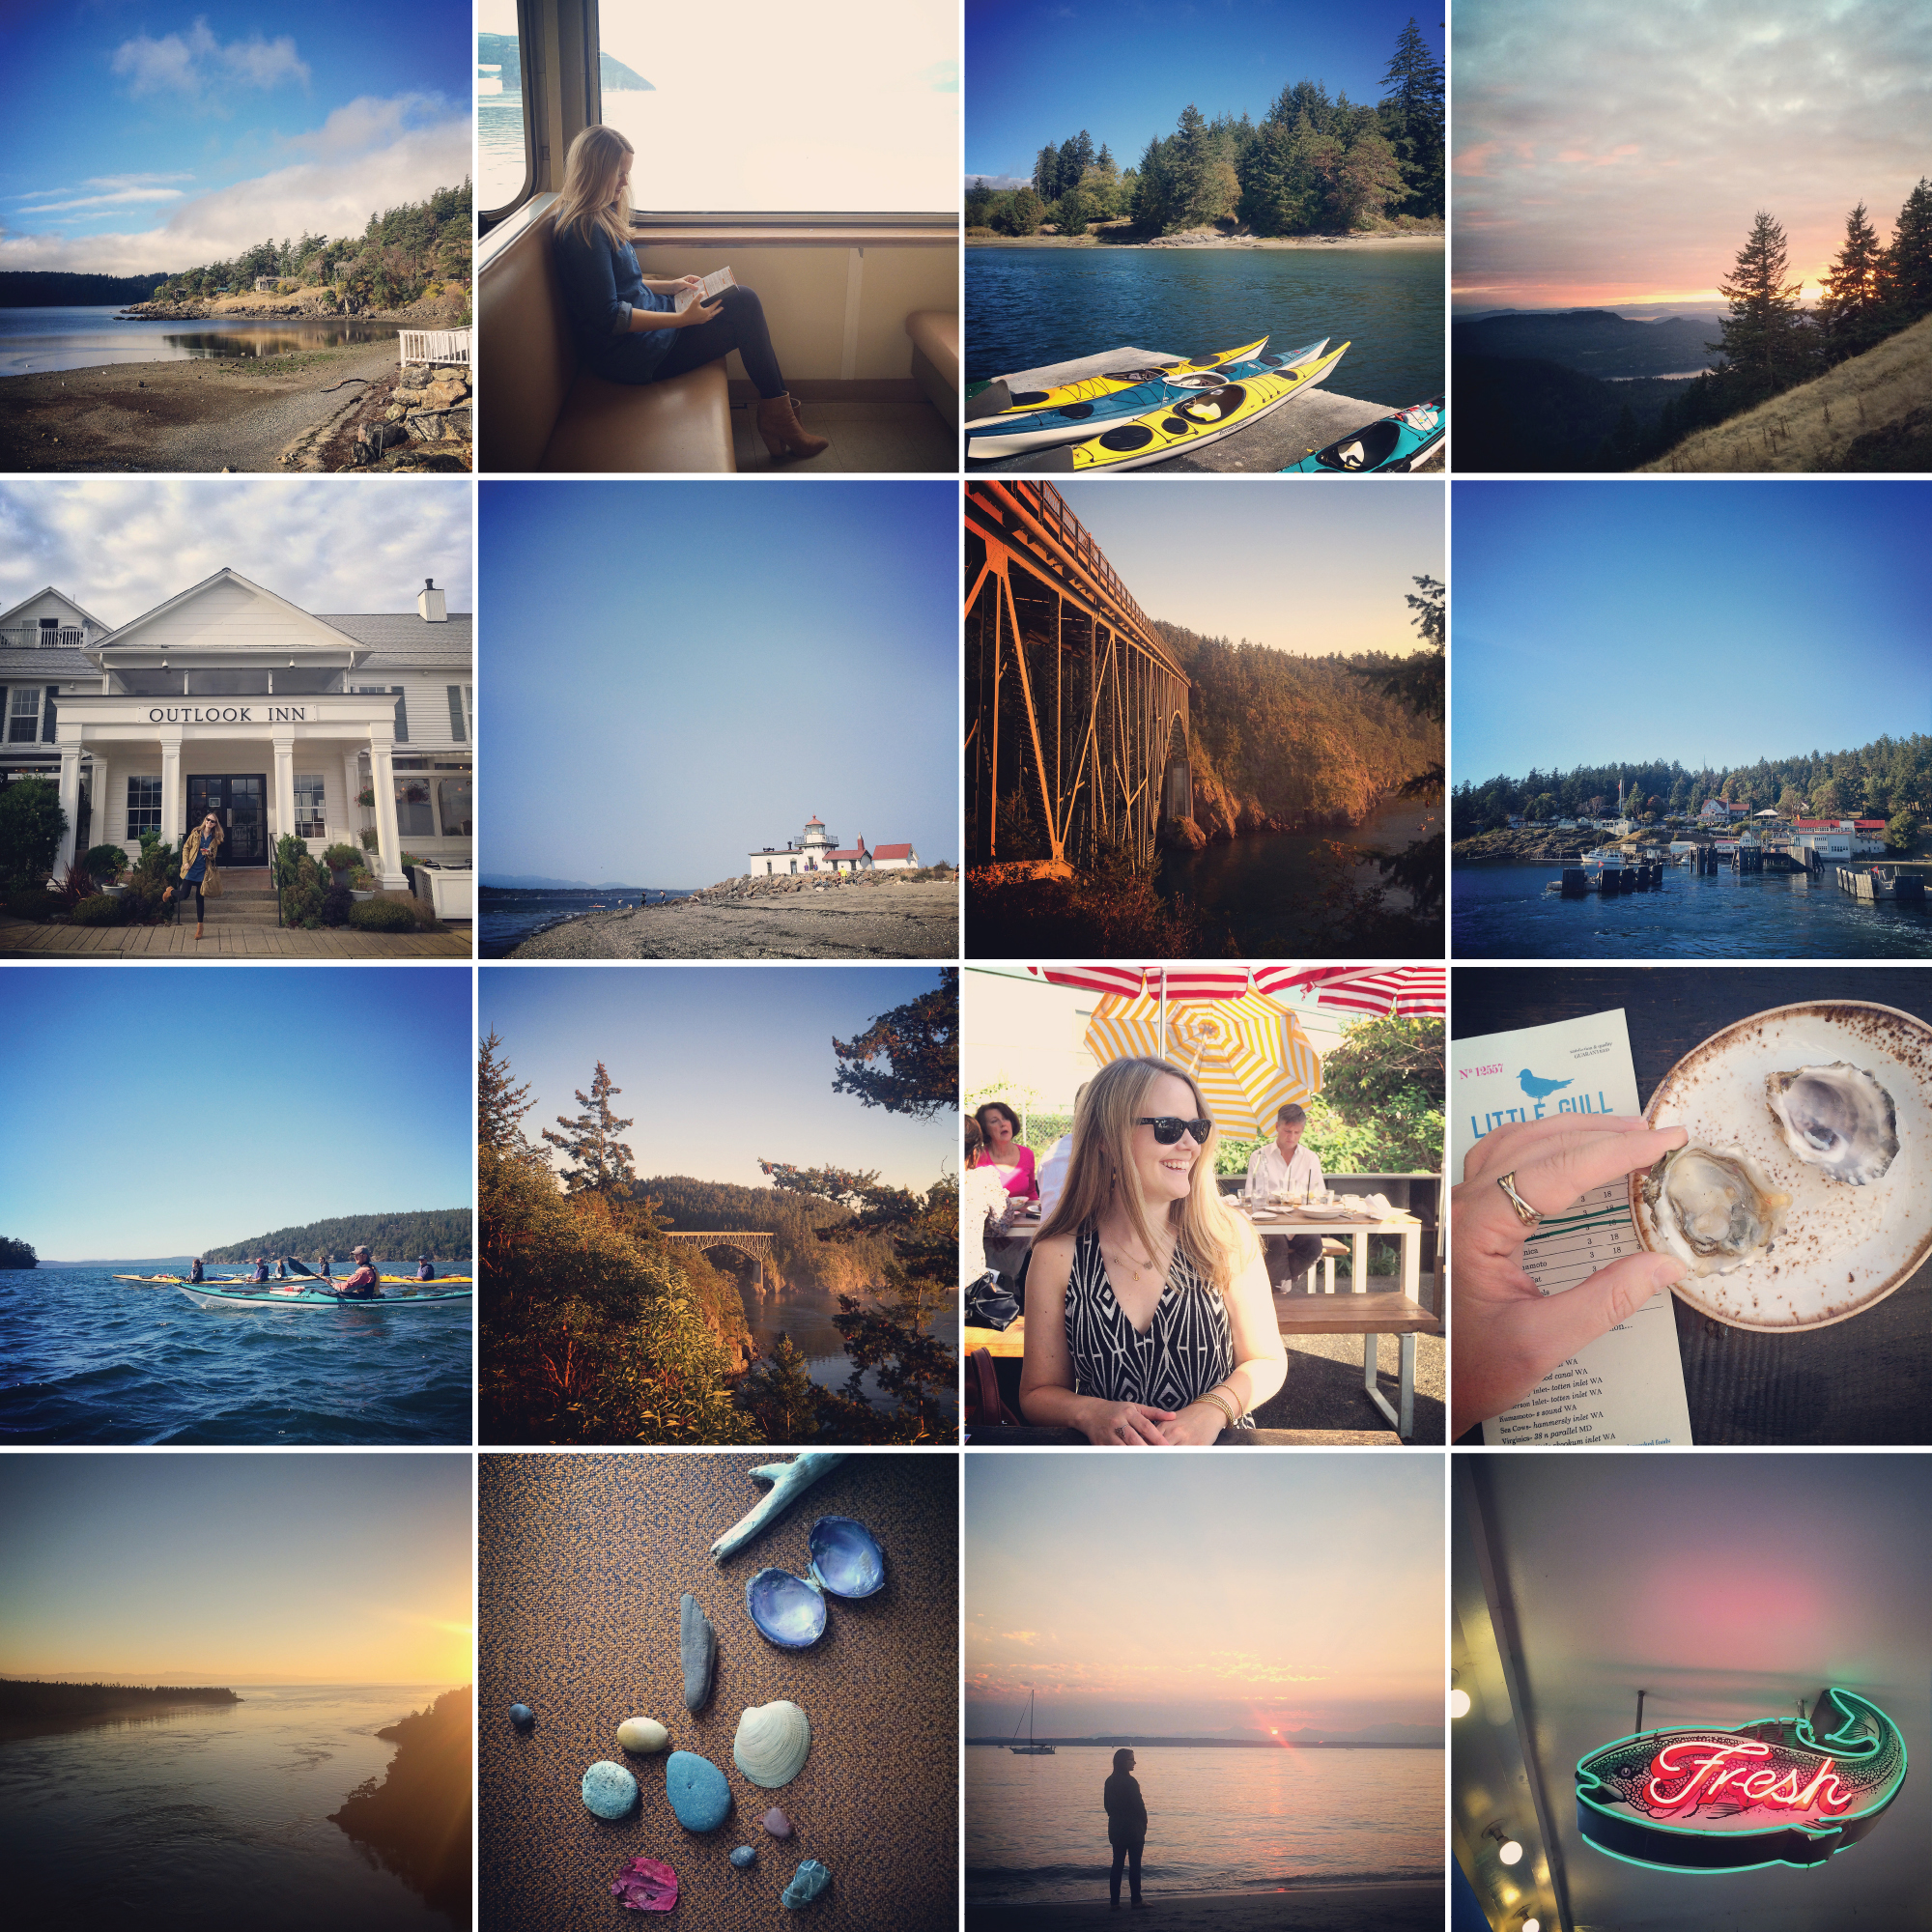 Caroline Maxcy's Seattle and San Juan Islands, WA Instagram photo favorites.